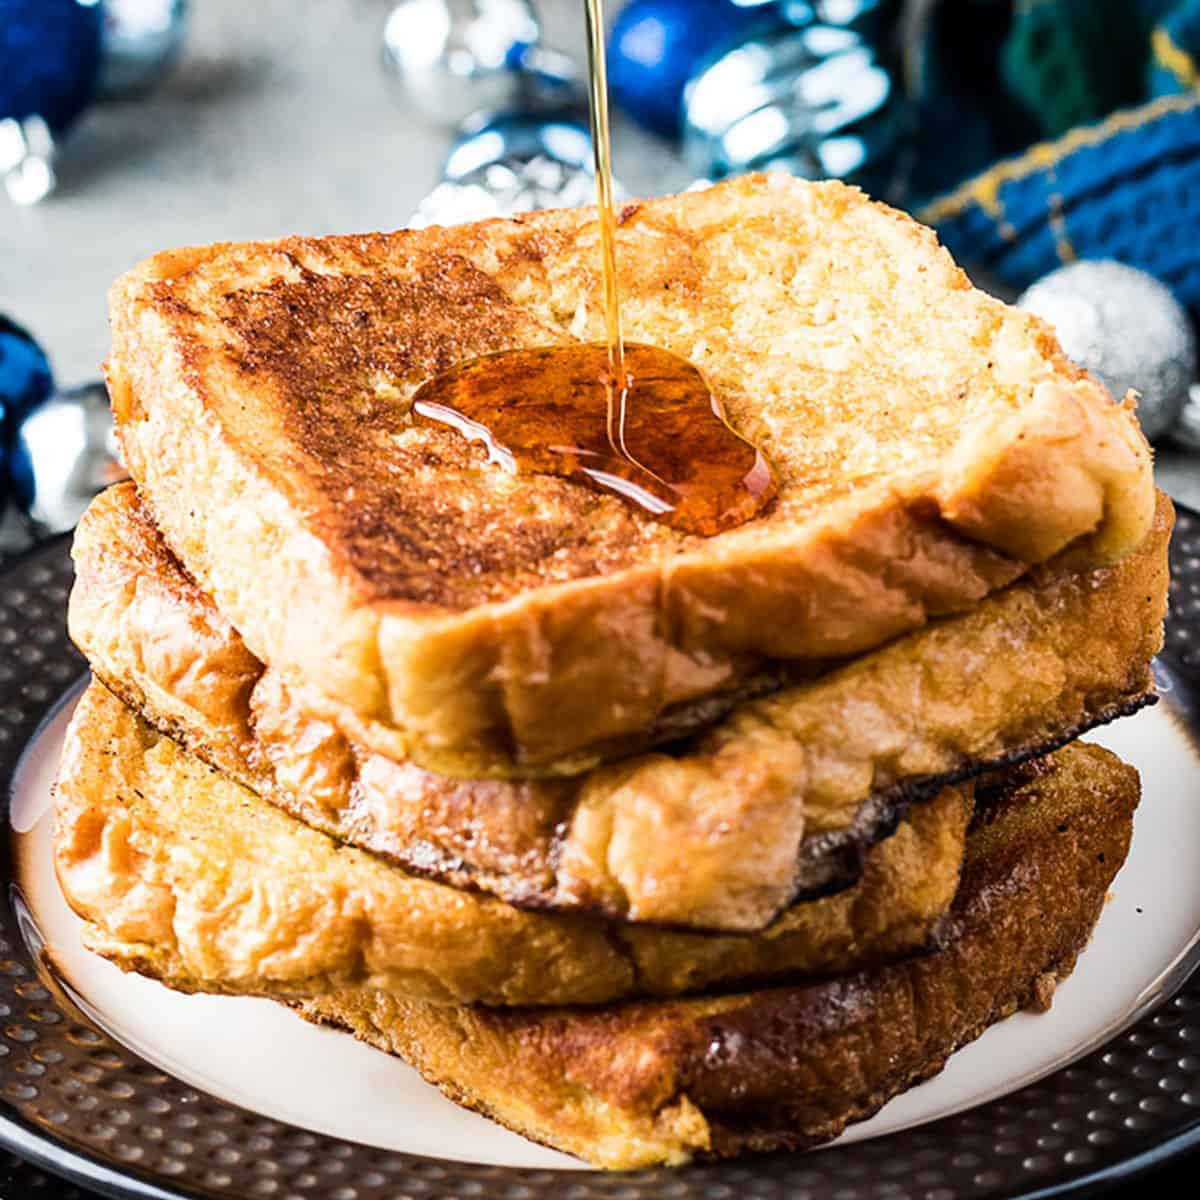 Stack of eggnog French toast being drizzled with syrup.